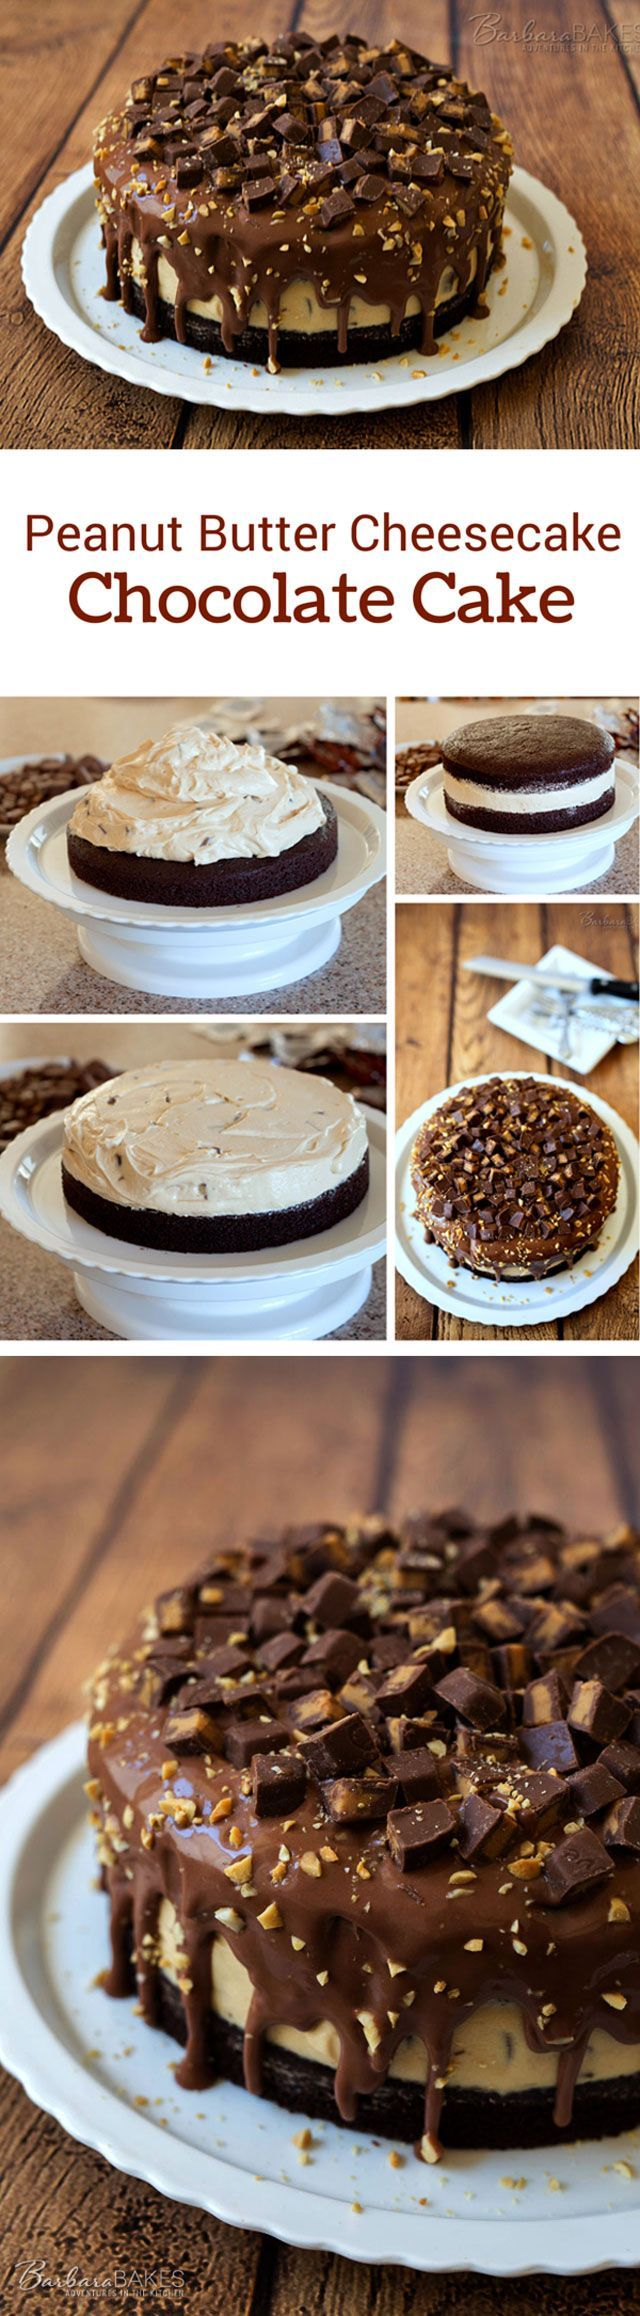 ... cakes on Pinterest | Chocolate cakes, Caramel apples and Icebox cake